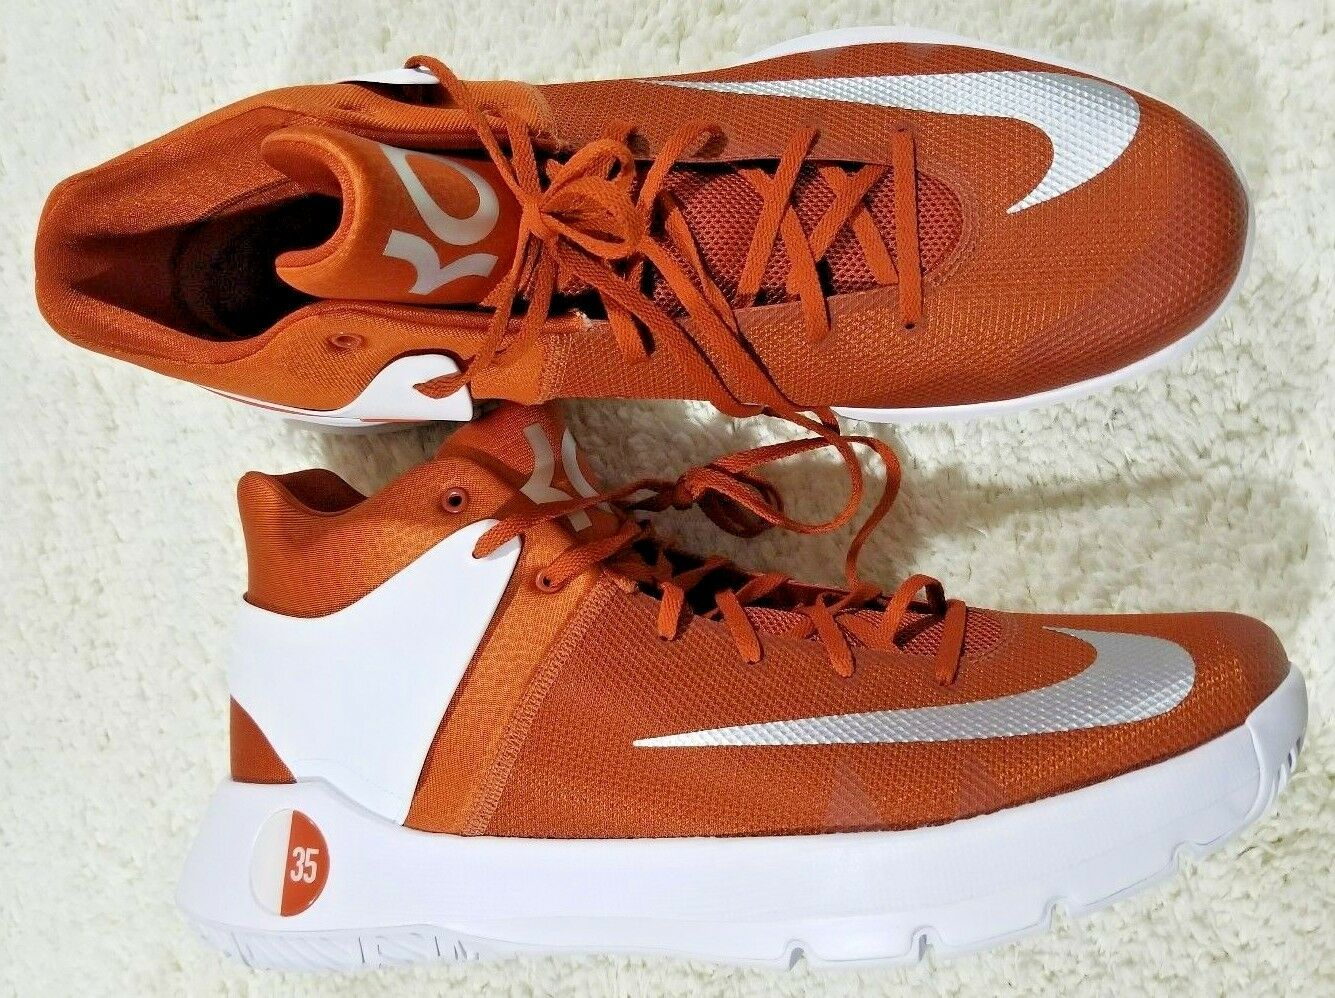 NEW NIKE KD Trey 5 IV Basketball shoes Men's 15.5 M Dark orange White 856484-882